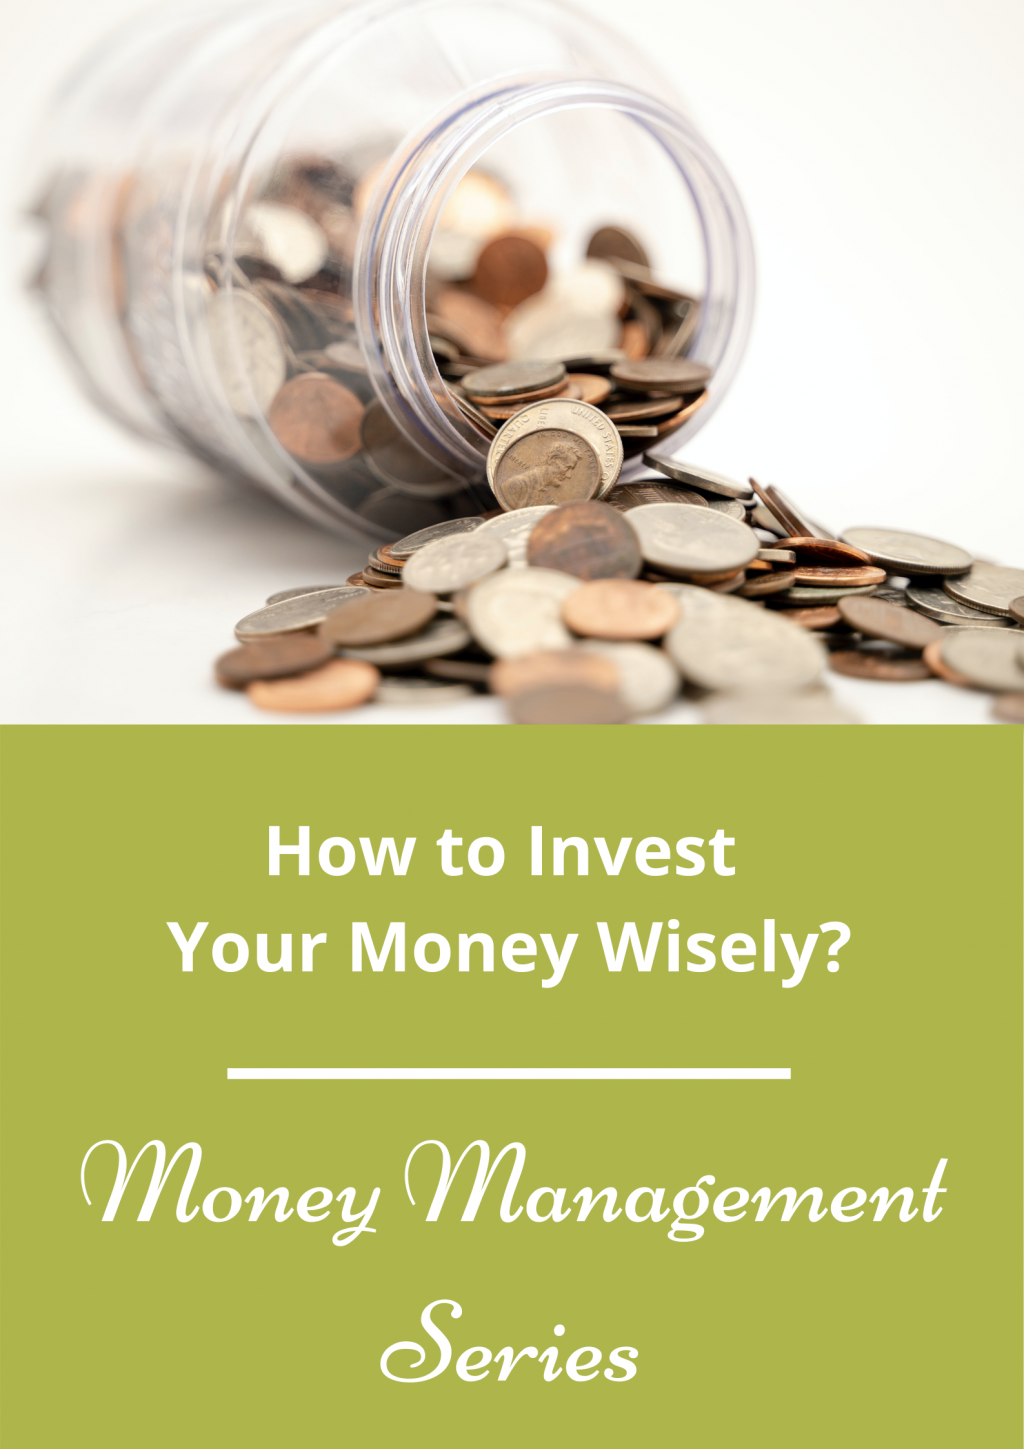 How to Invest Your Money Wisely